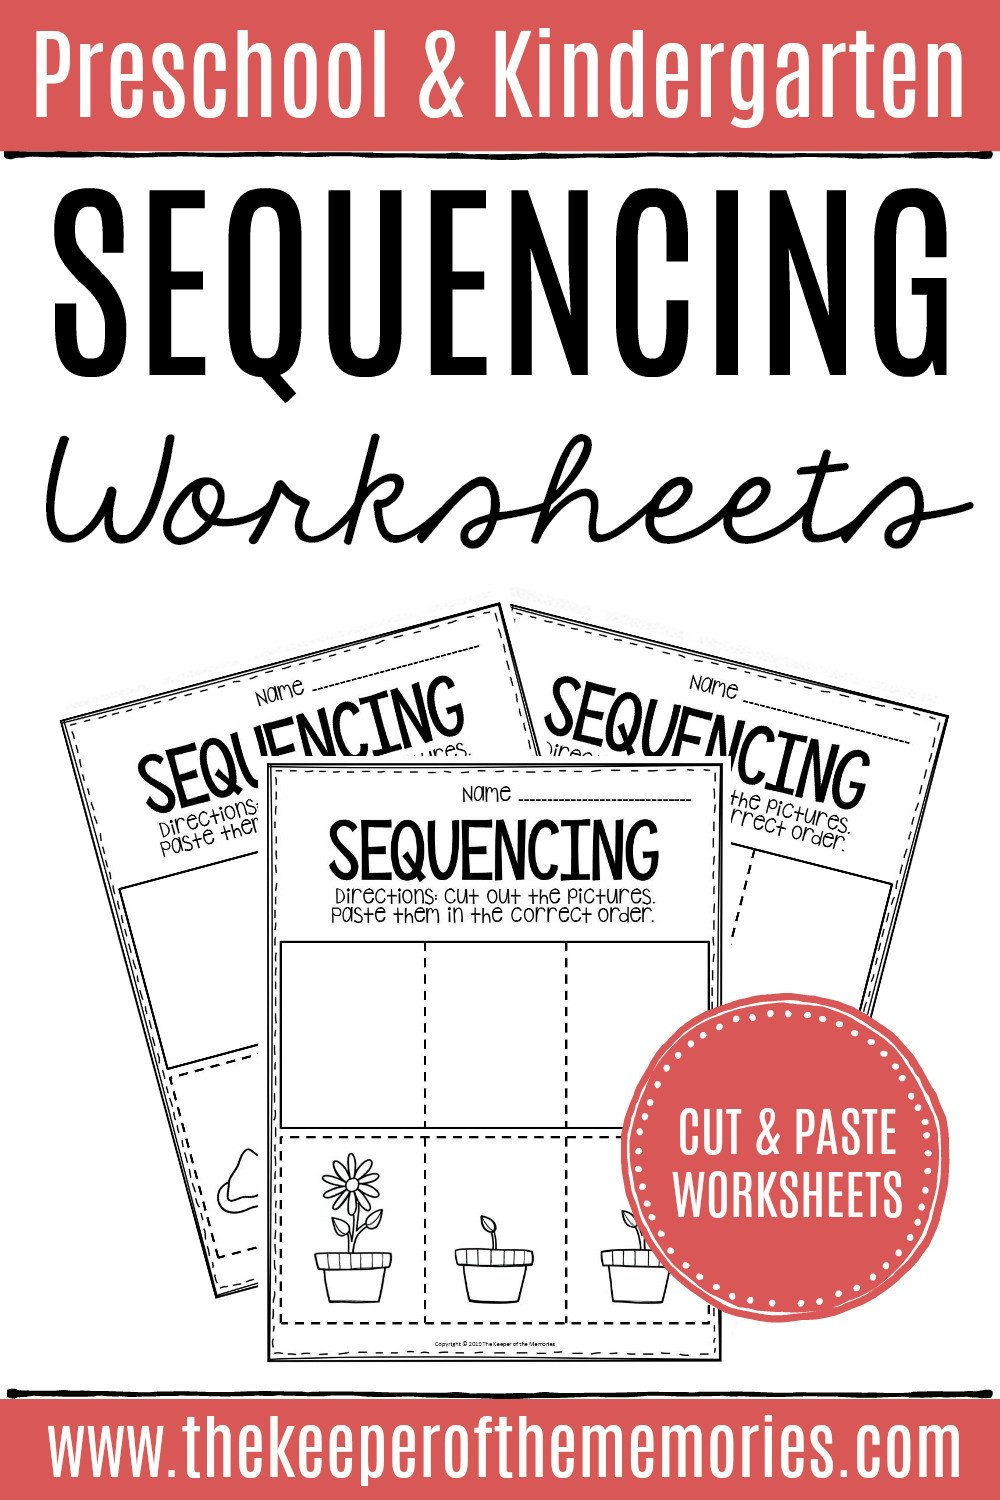 Sequencing events Worksheet 3 Step Sequencing Worksheets the Keeper Of the Memories